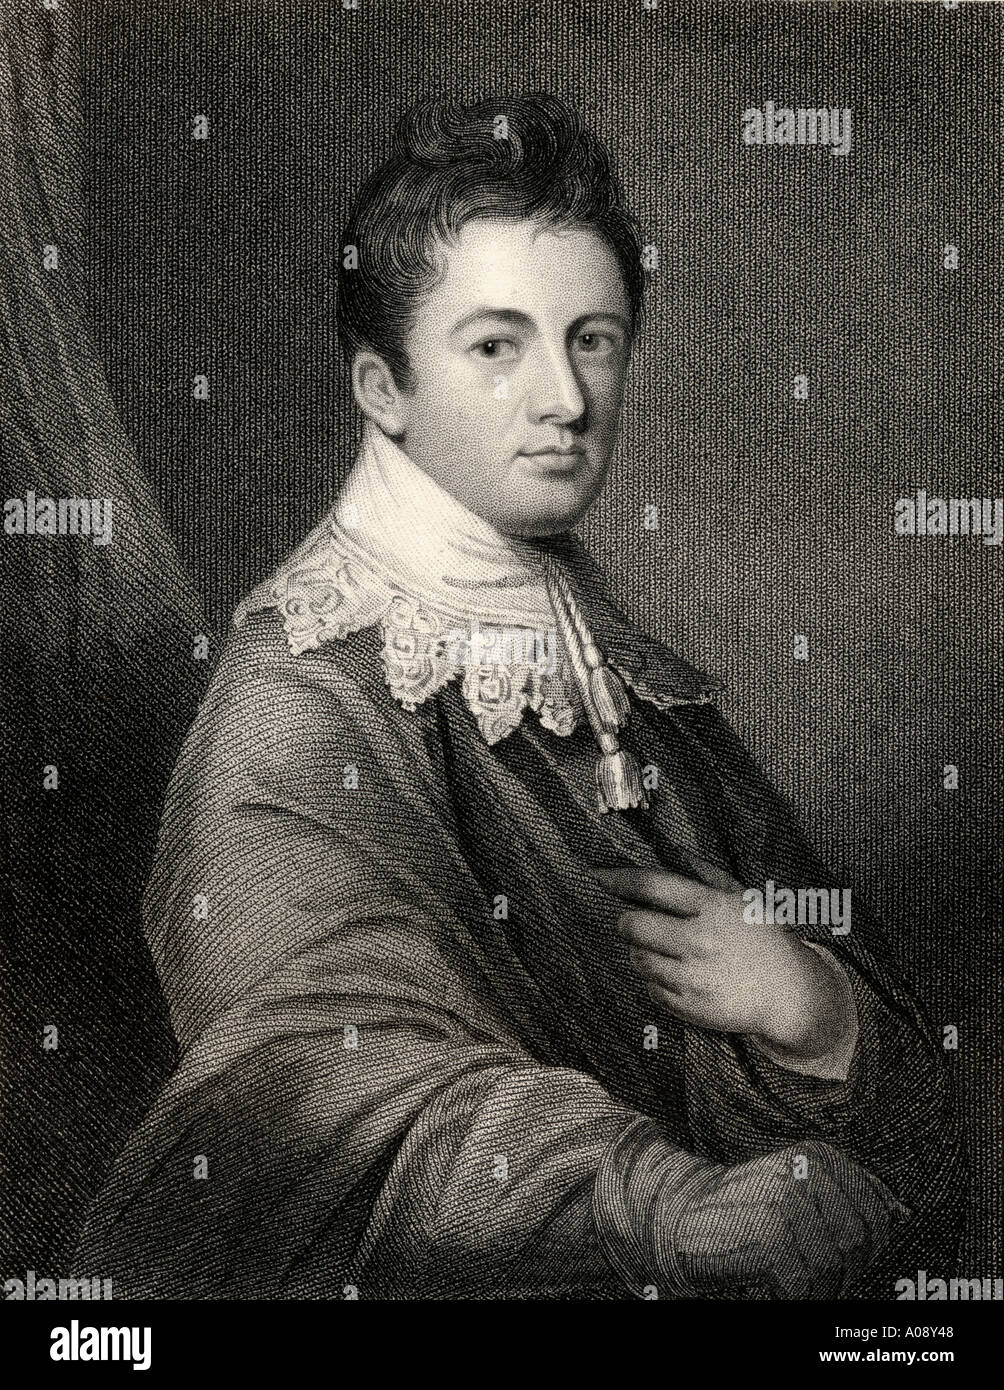 James Wandesford Butler, 1st Marquess of Ormonde,1777 - 1838.  Irish nobleman and politician. - Stock Image